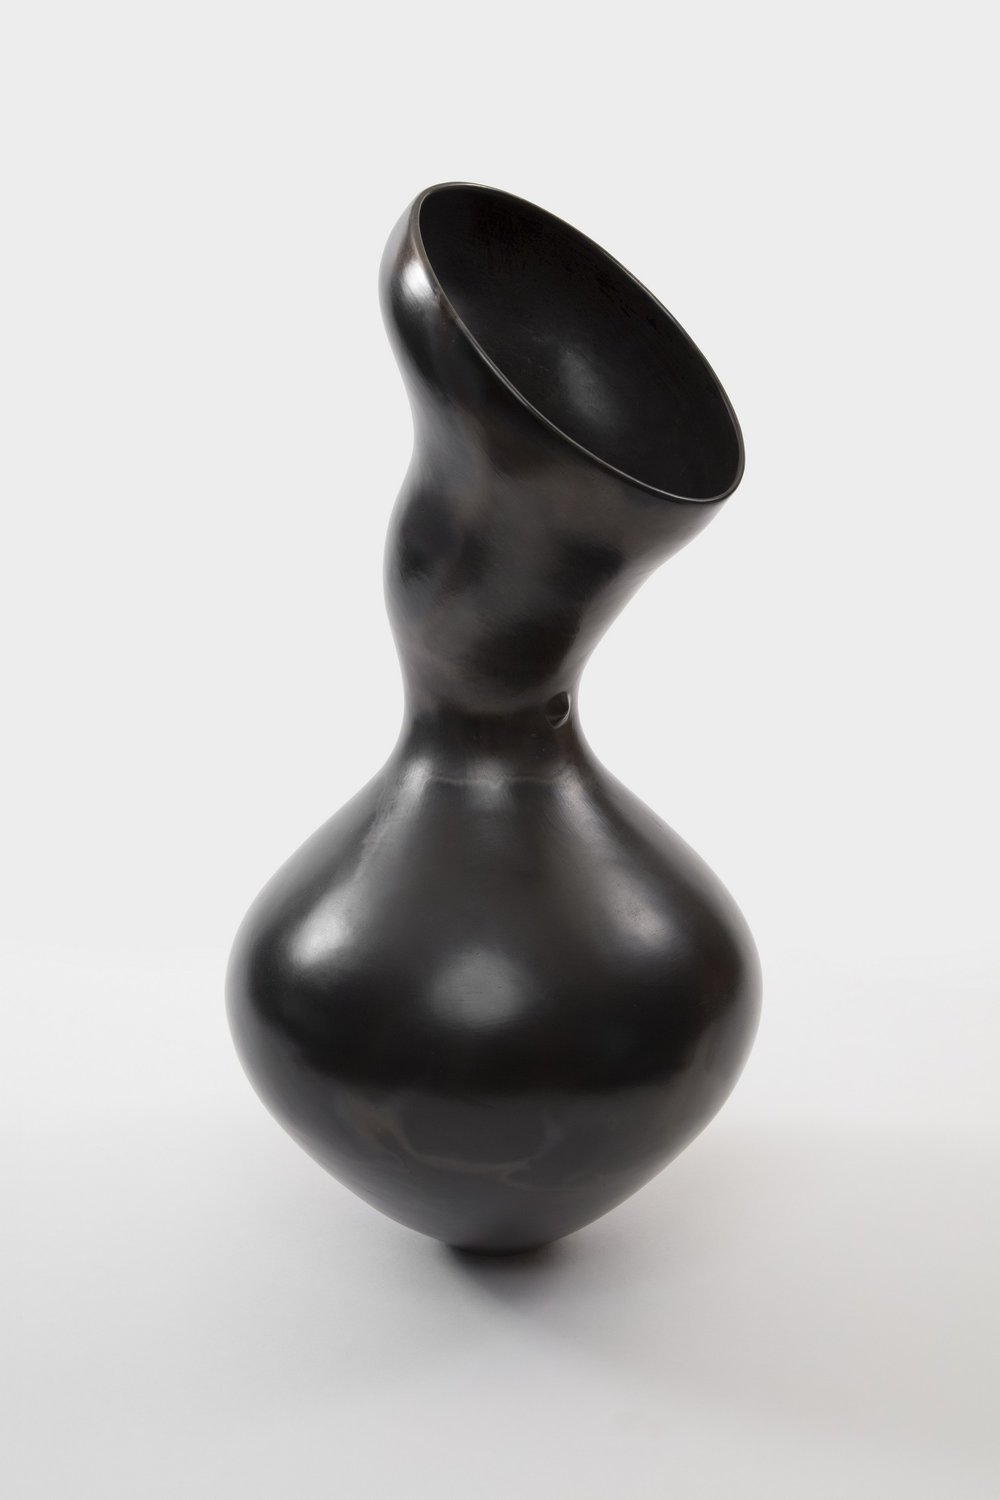 Vessel Series II, no.1 by Odundo, 2005–2006. Burnished and carbonized terracotta. Maxine and Stuart Frankel Foundation for Art, Bloomfield Hills, MI.